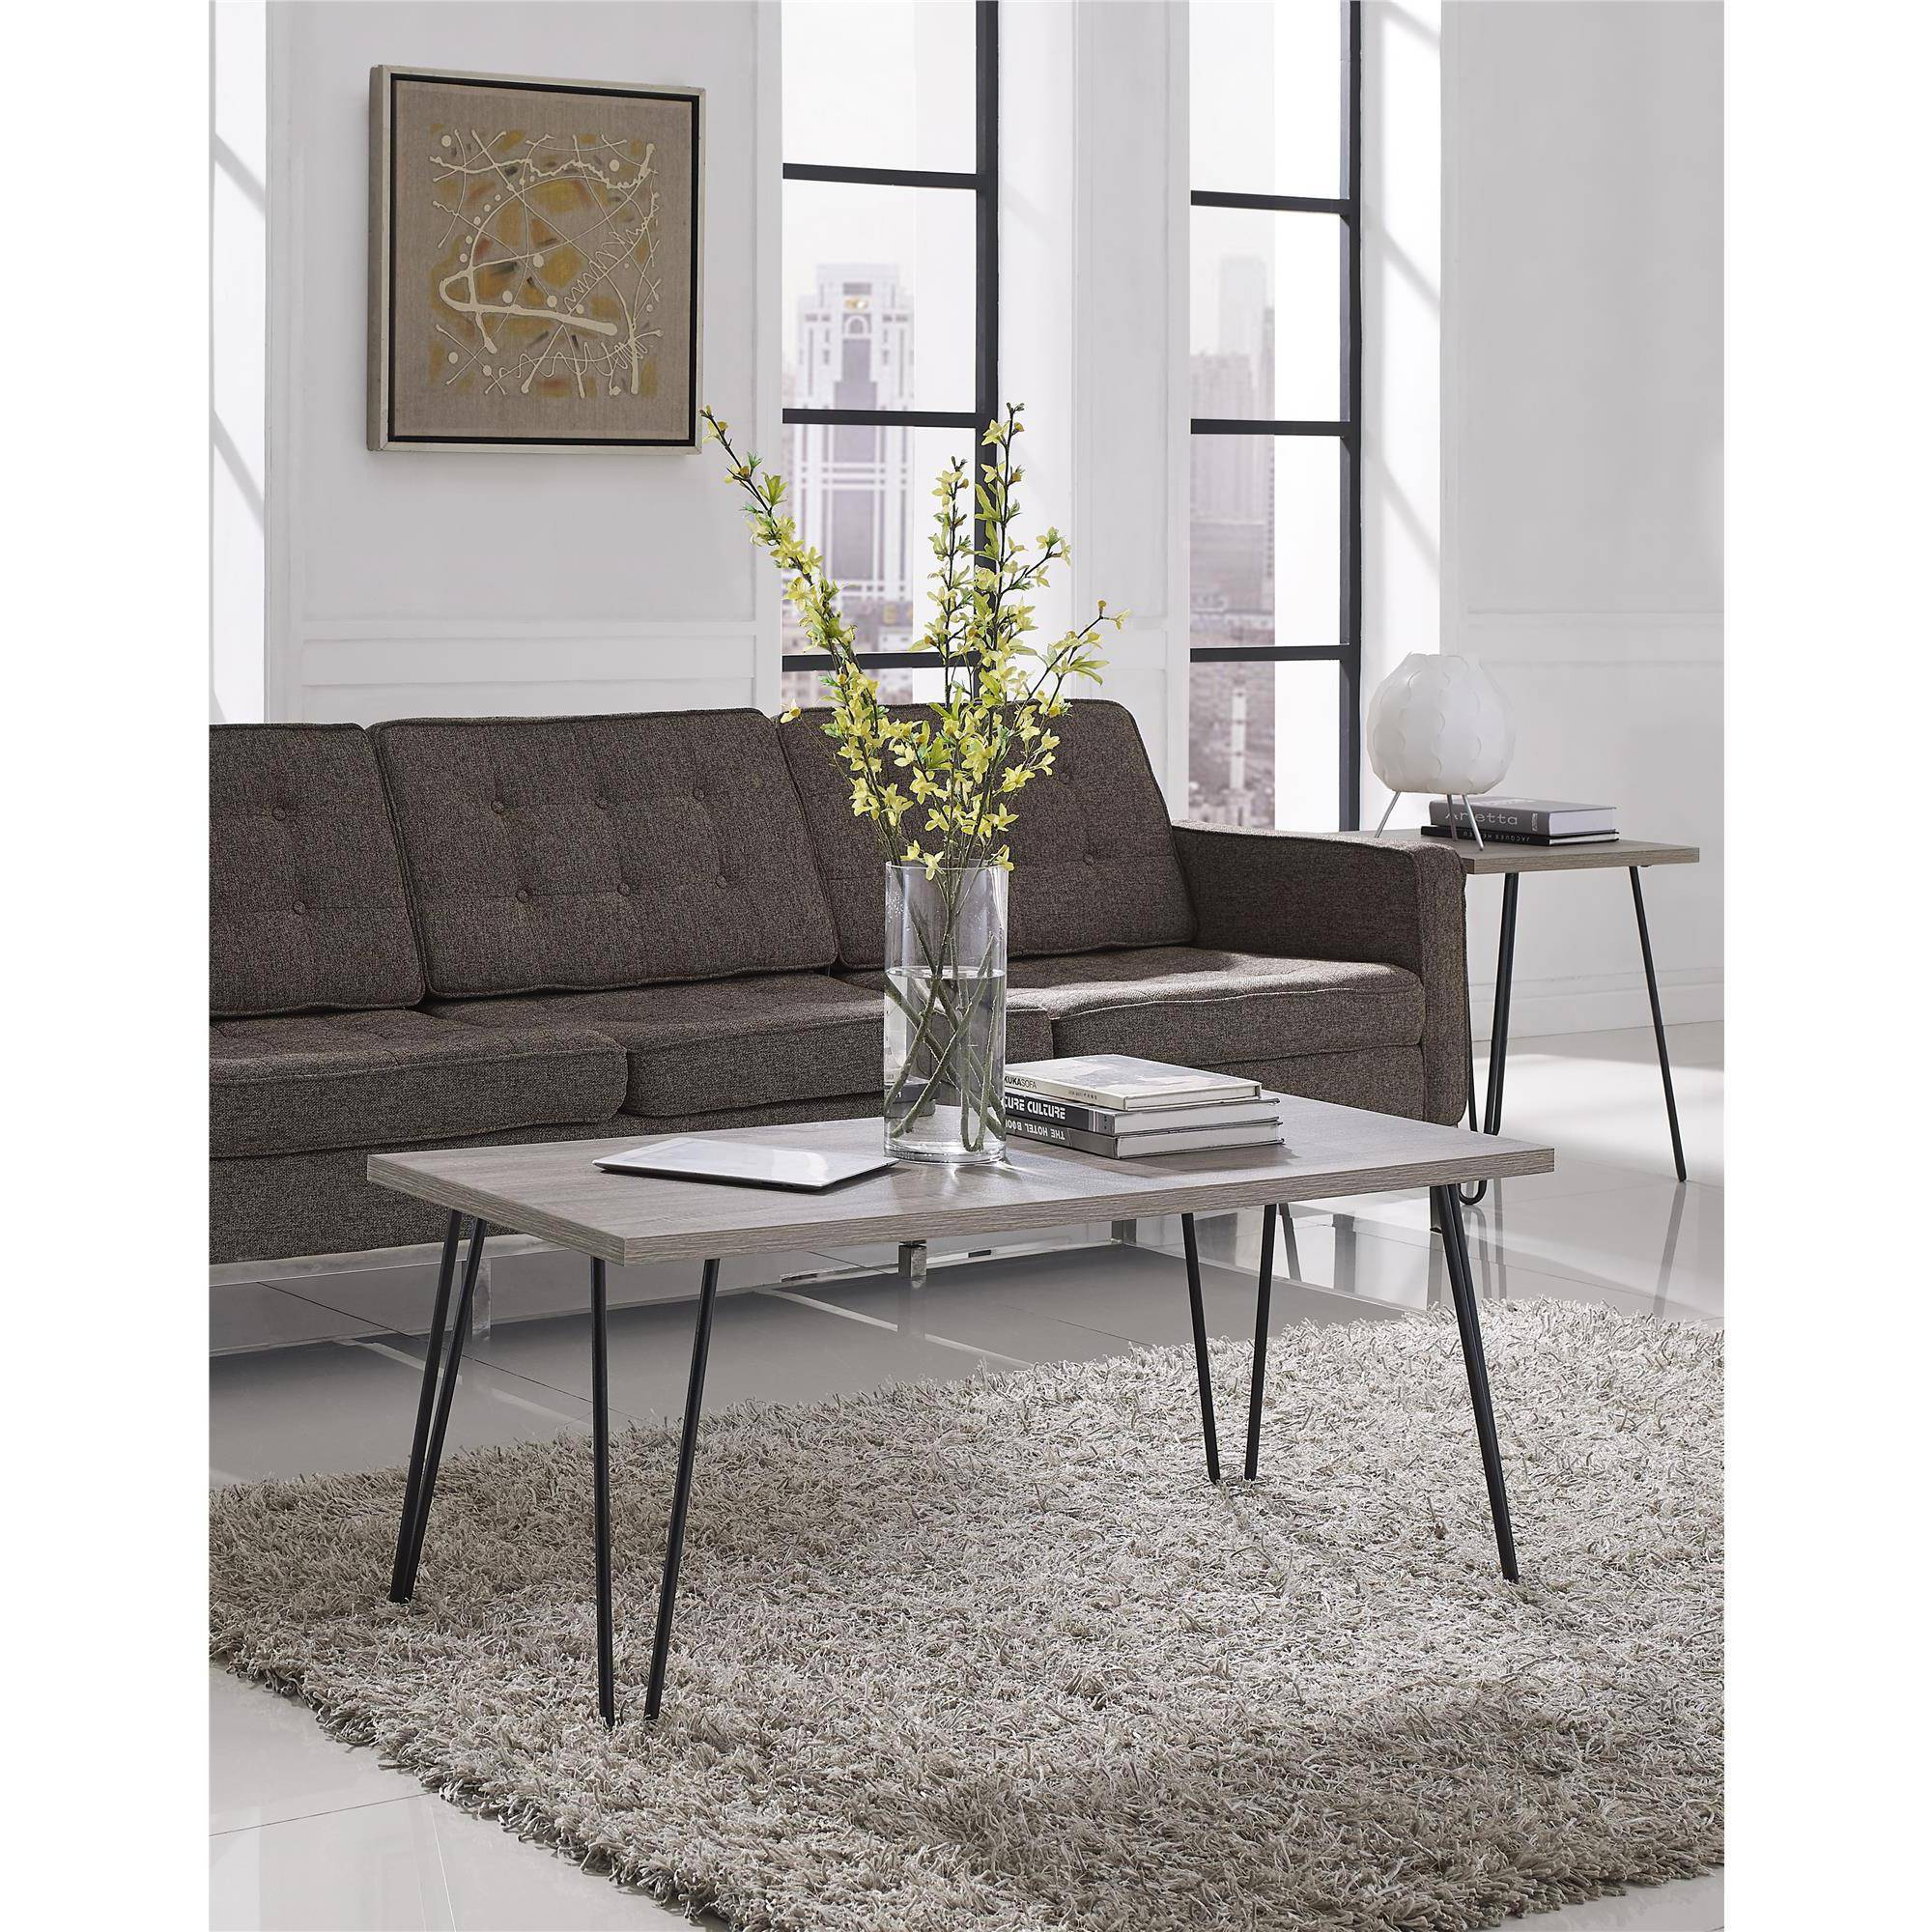 Ameriwood Home Owen Retro Coffee Table Distressed Gray Oak